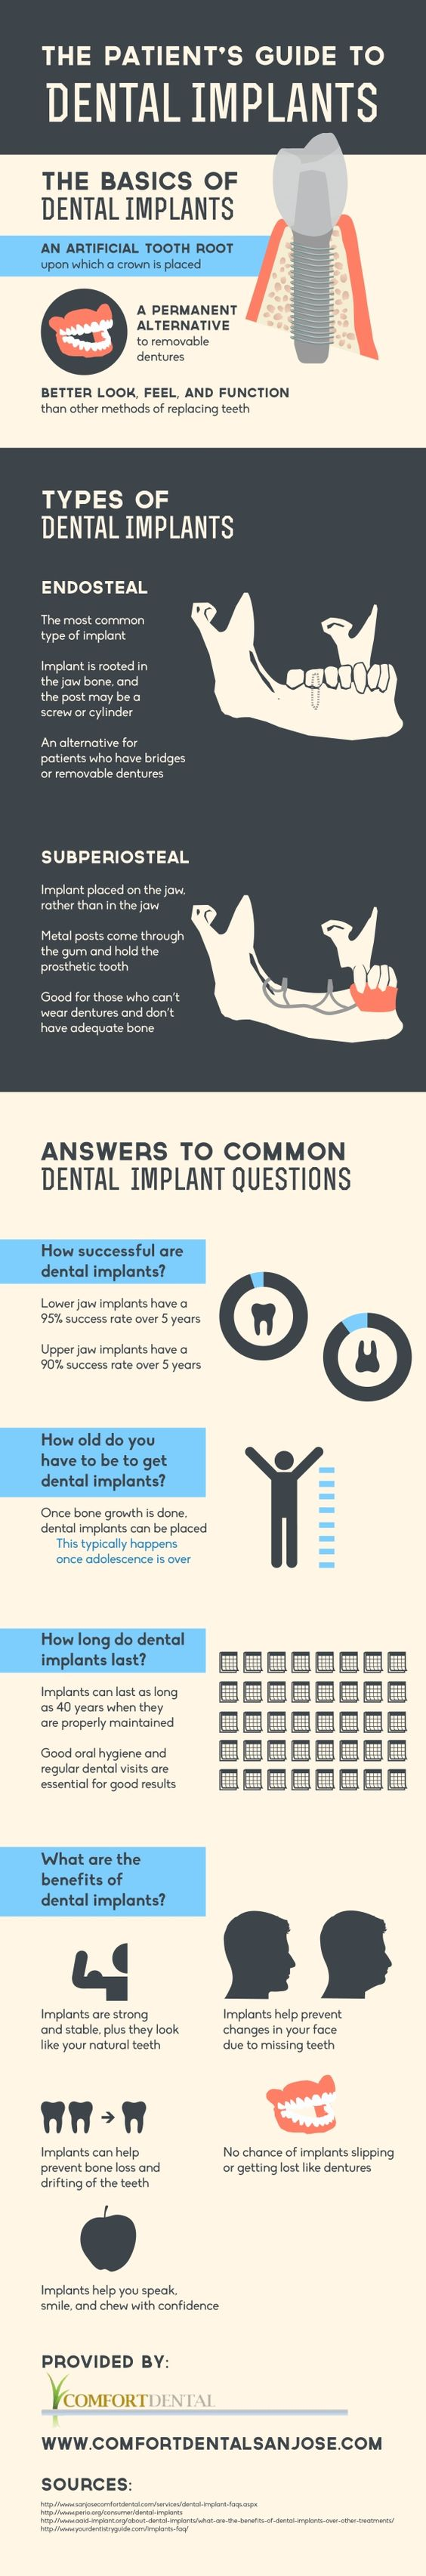 patients guide to dental implants